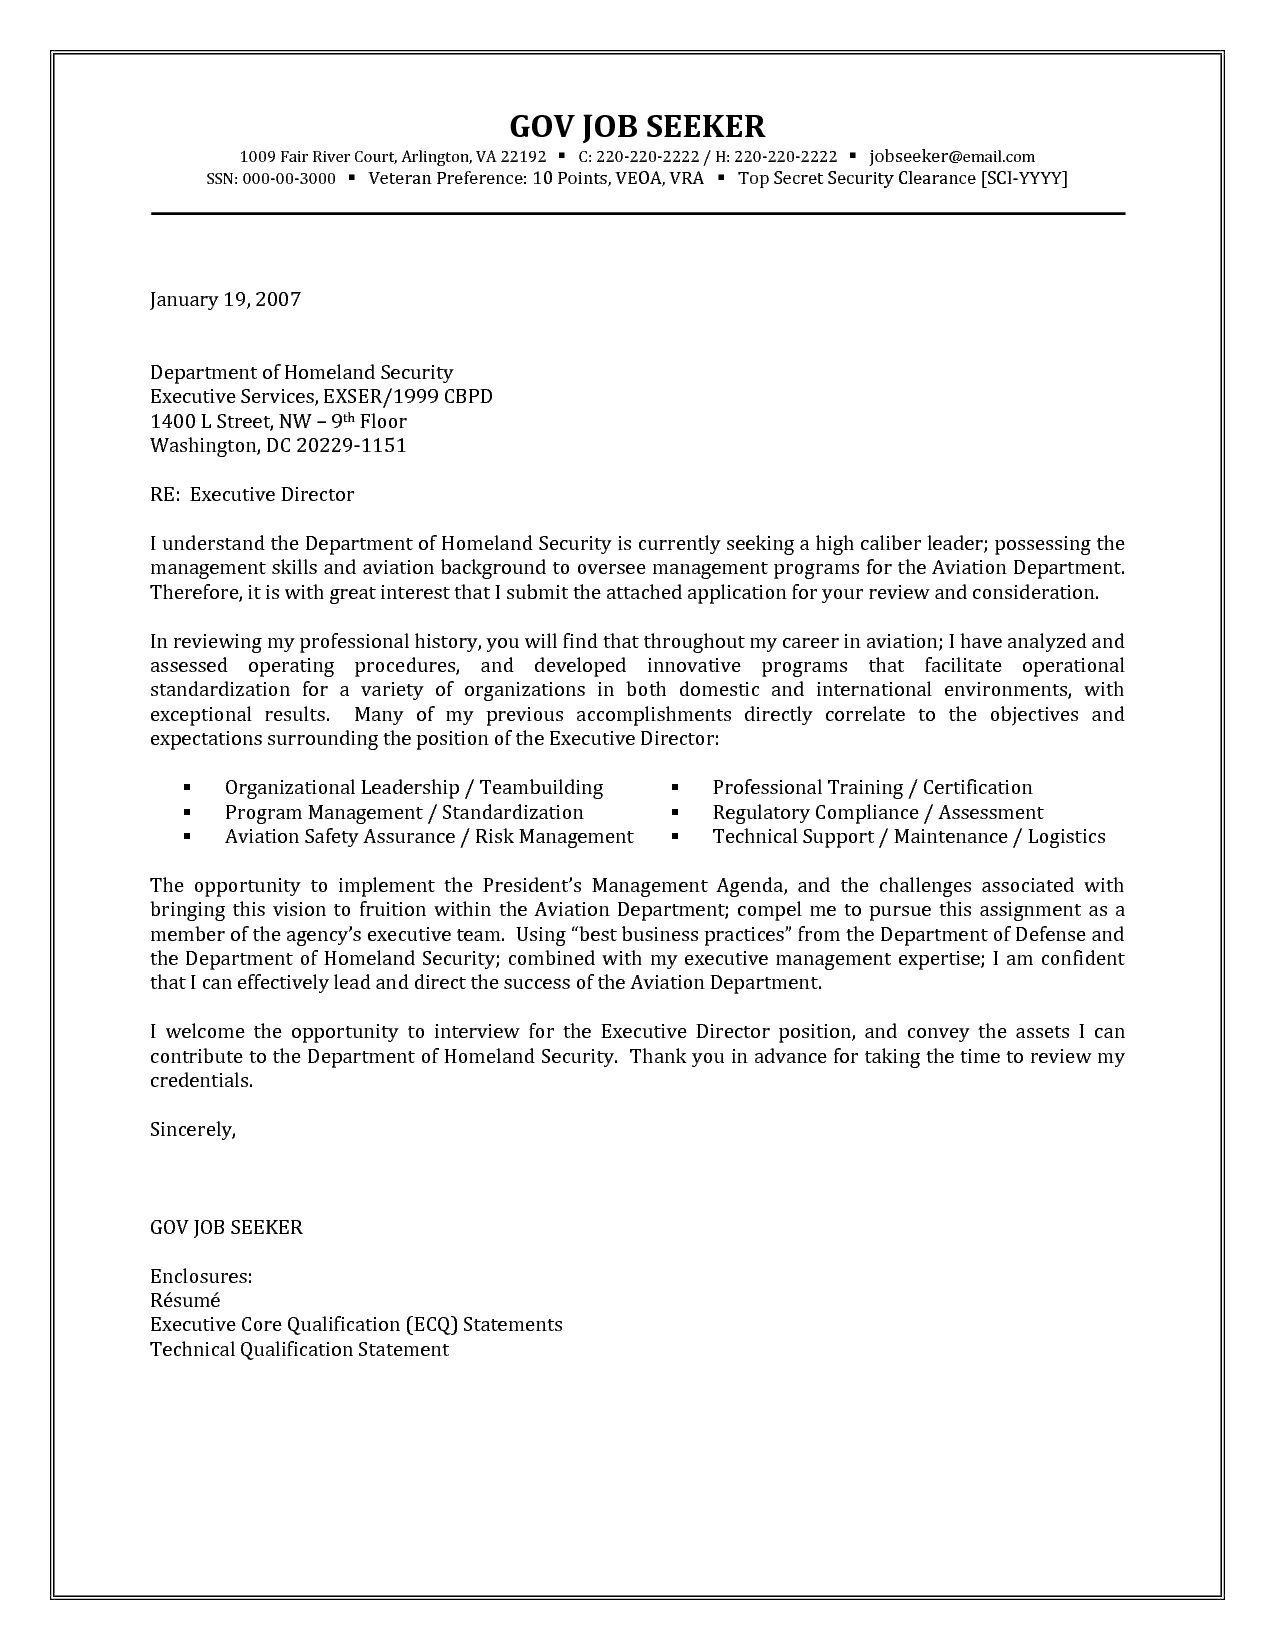 Government resume cover letter examples httpjobresumesample government resume cover letter examples httpjobresumesample99 spiritdancerdesigns Image collections